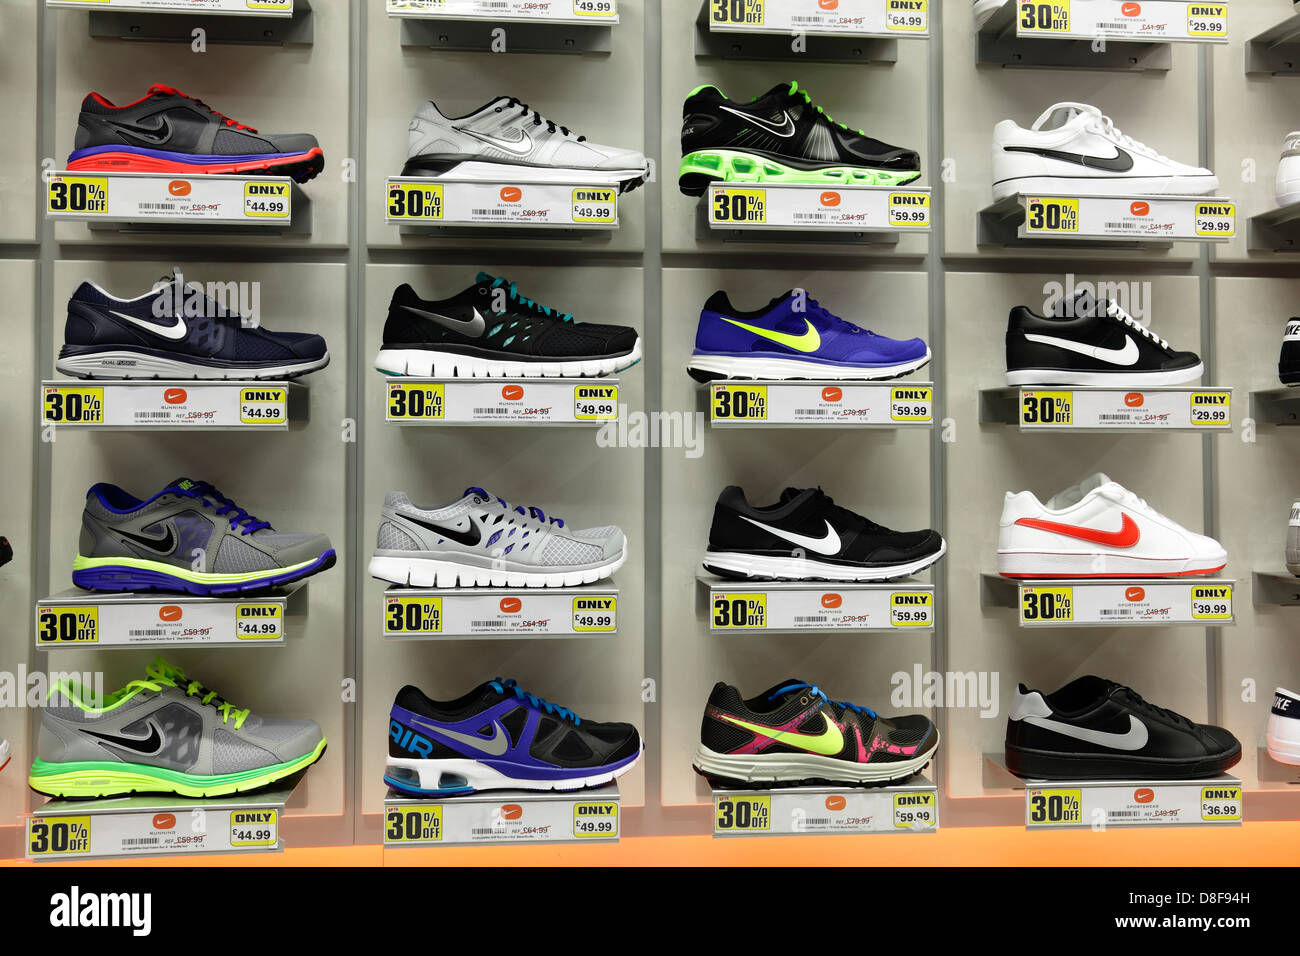 Shop our huge selection of cheap trainers from top brands Nike, adidas, Puma, Converse and more for men, women and kids. Don't miss out, shop today! We notice you are using an old internet browser.